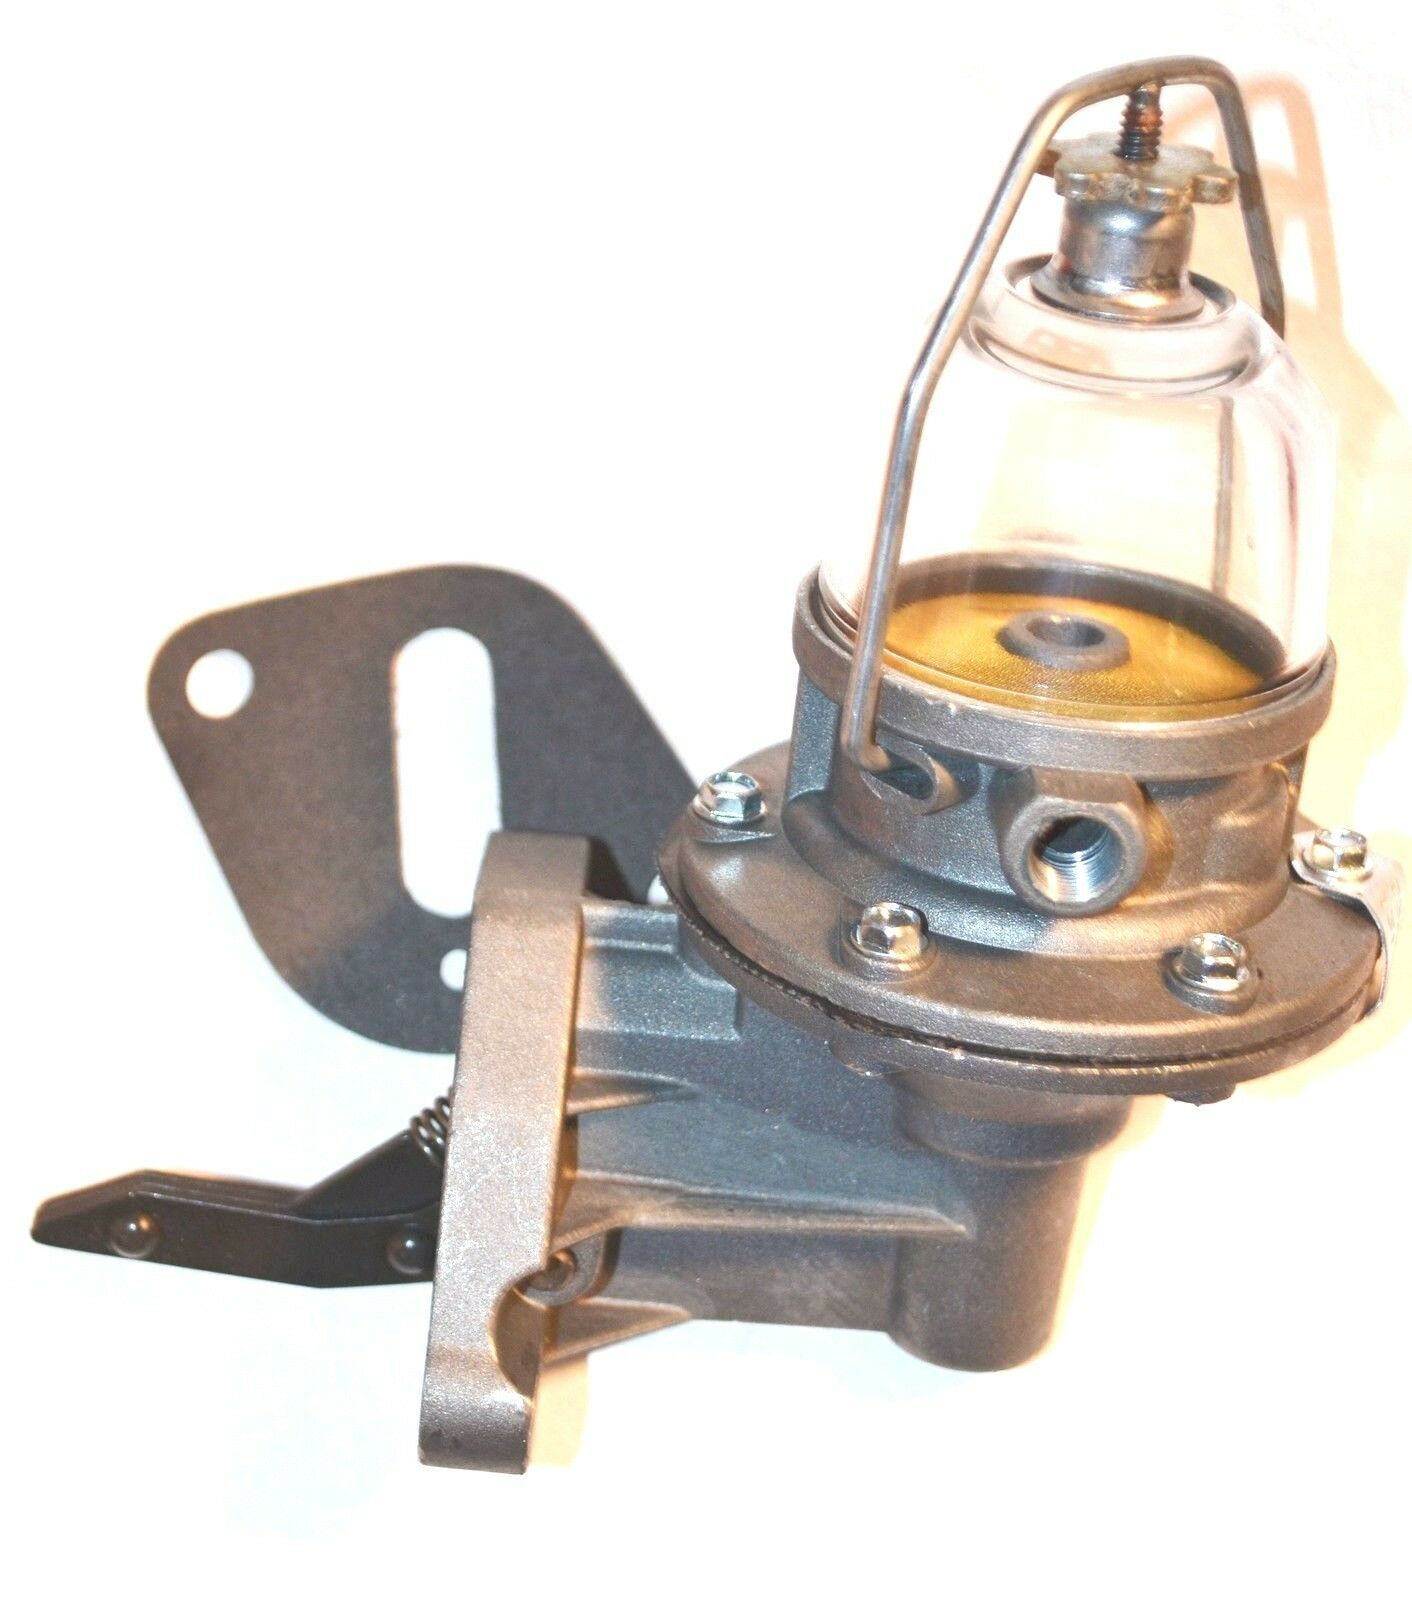 Fuel Pump Chrysler Desoto Dodge Plymouth 1954 1953 1952 1951 1950 Truck Filter 1949 1948 1939 1 Of 4only 4 Available